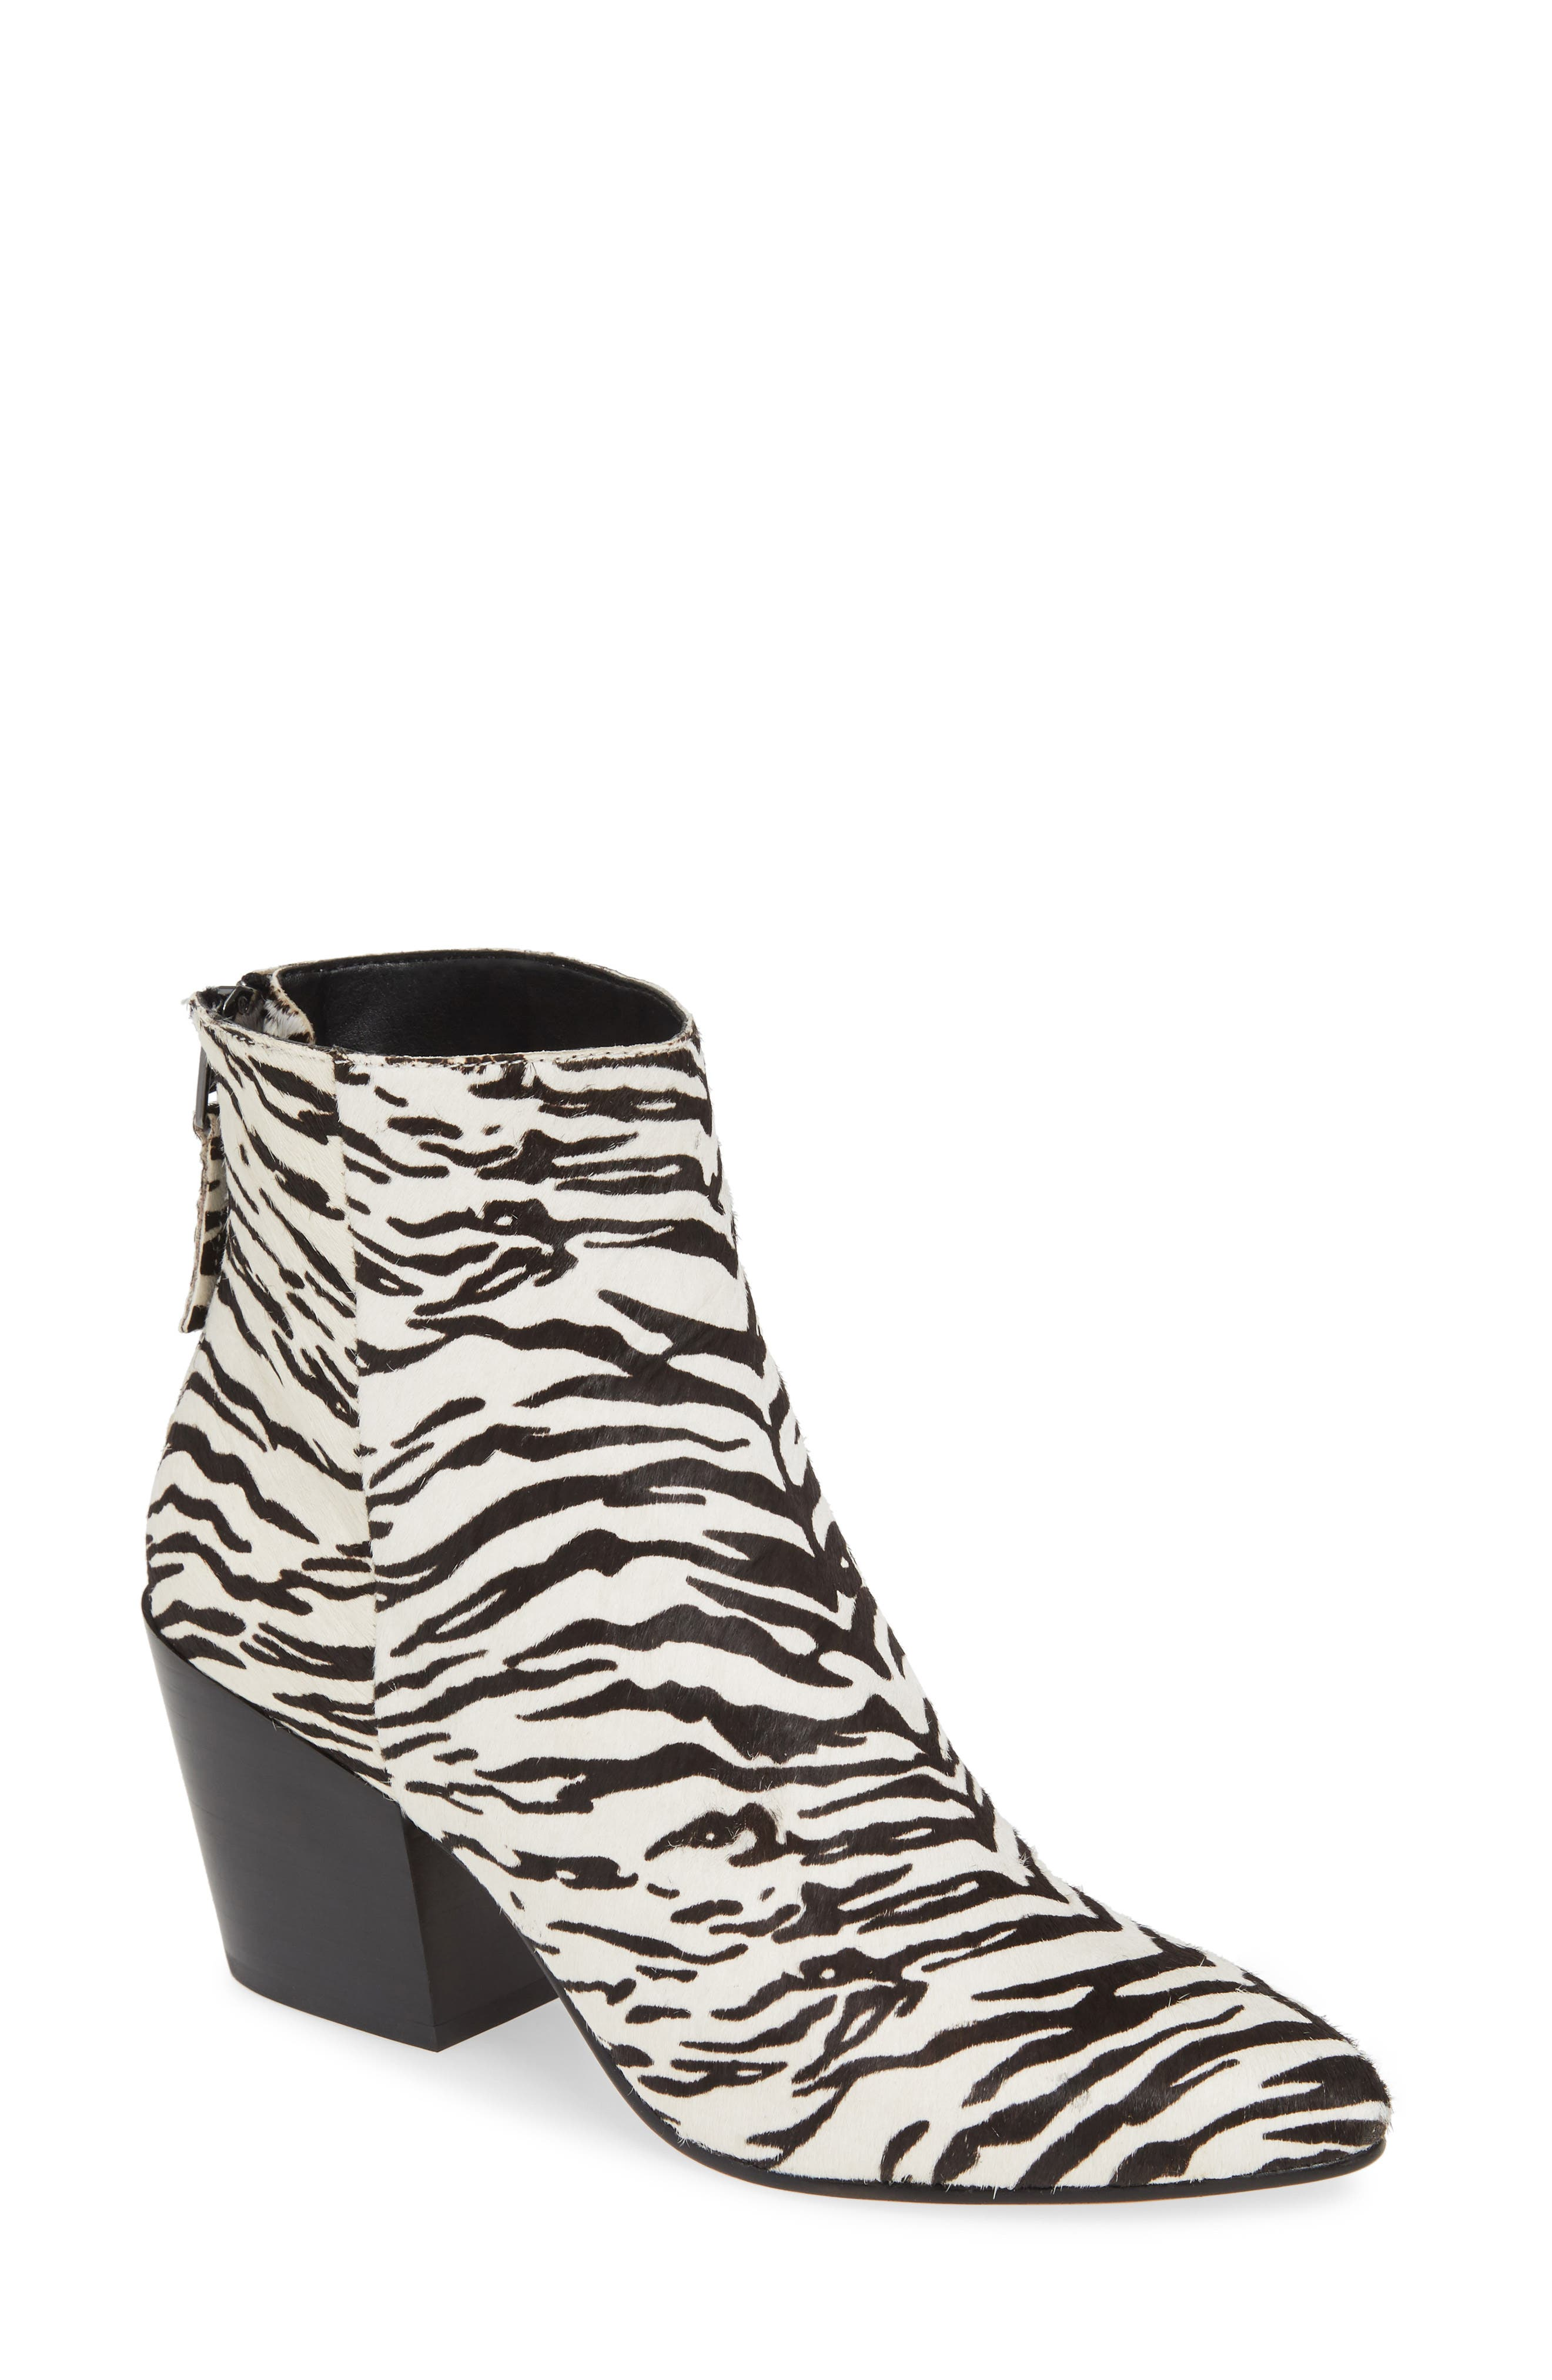 DOLCE VITA Coltyn Bootie, Main, color, 002